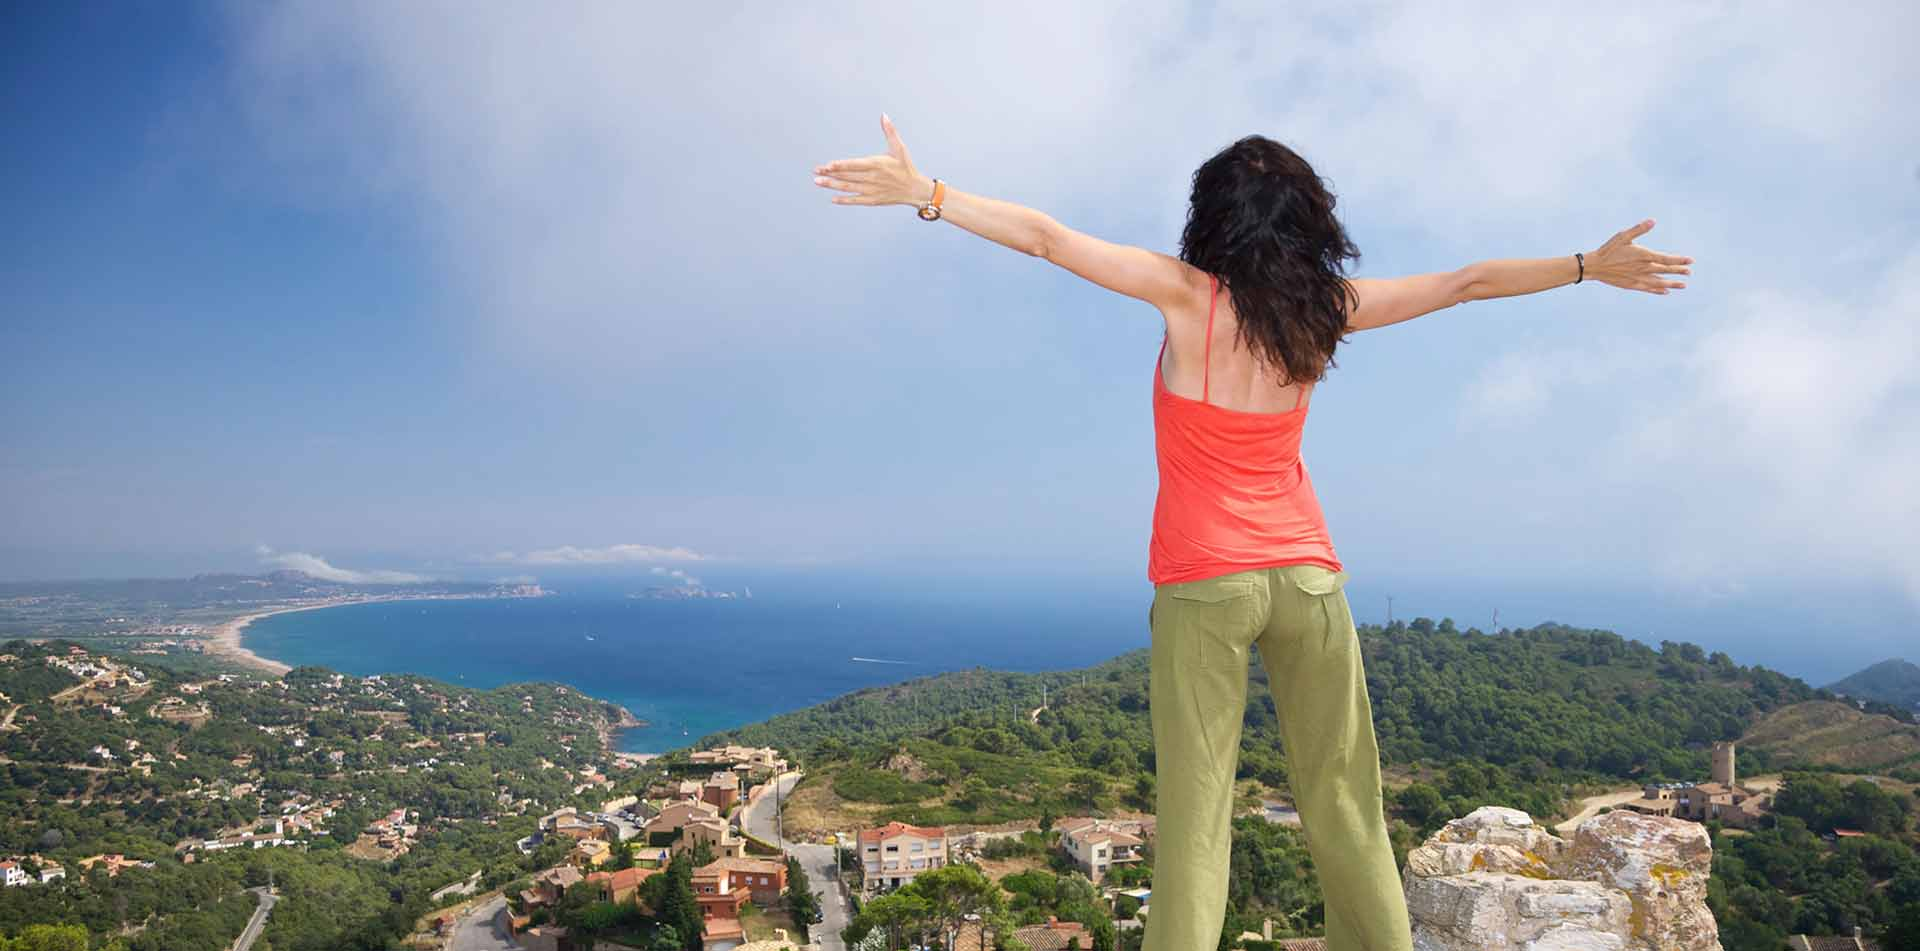 Woman with Outstretched Arms in Spain